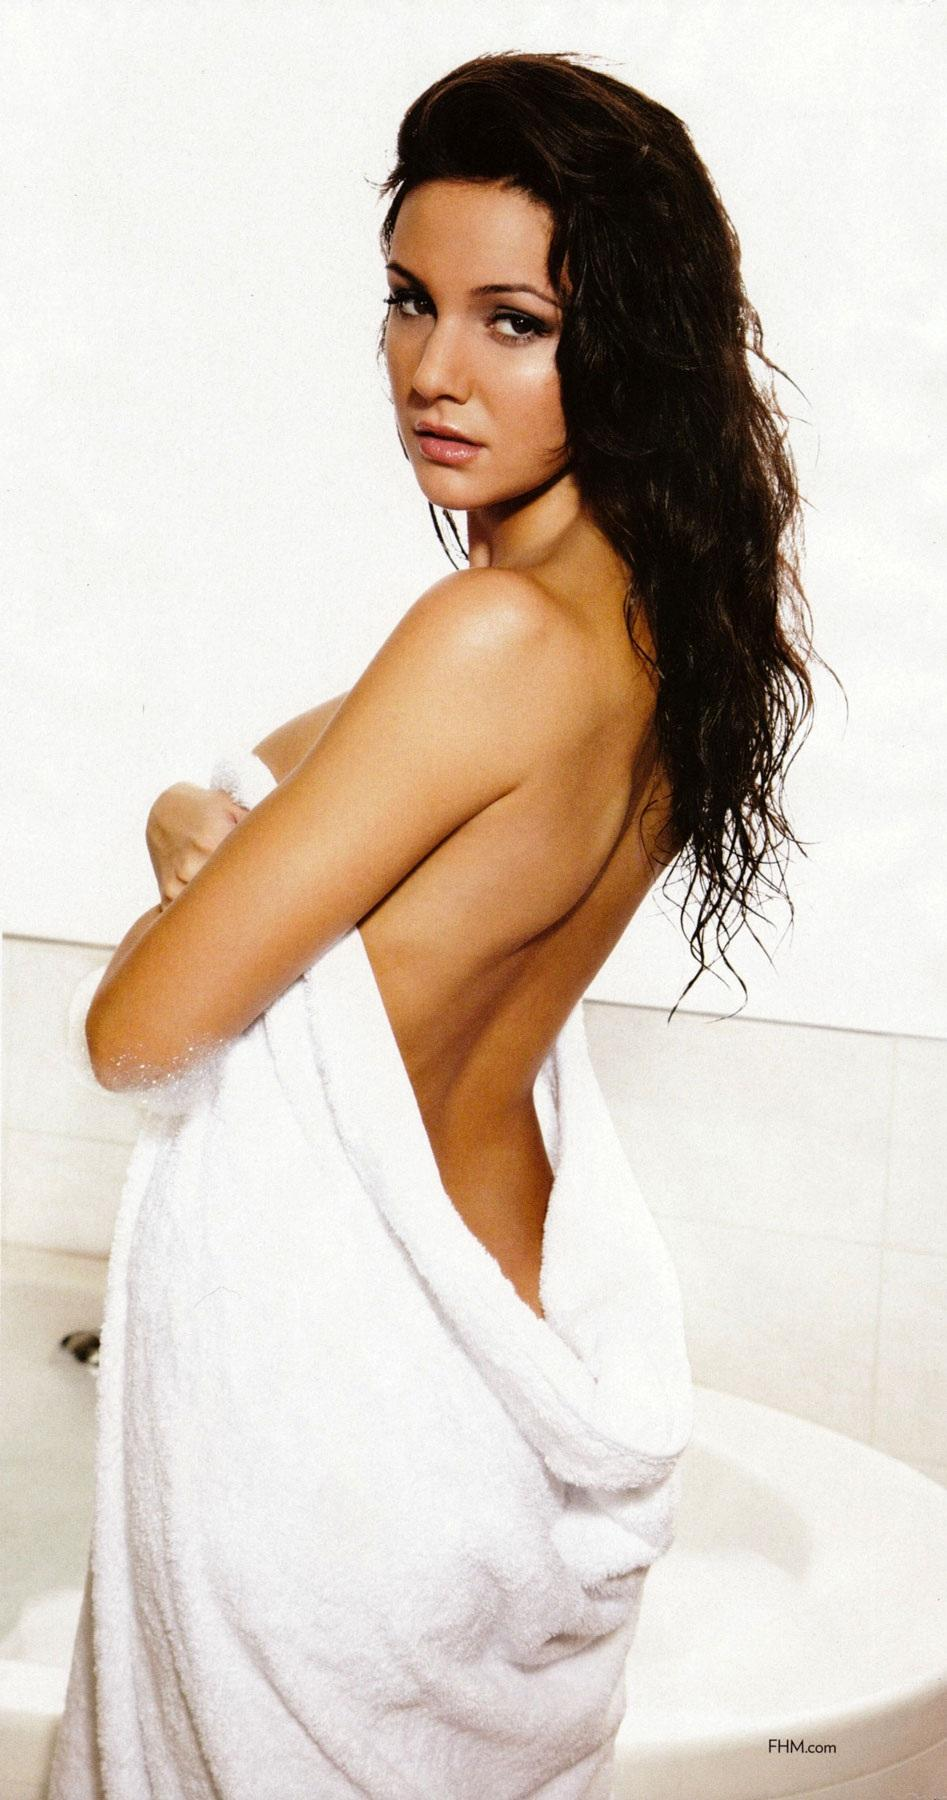 Michelle Keegan Fhm Hot